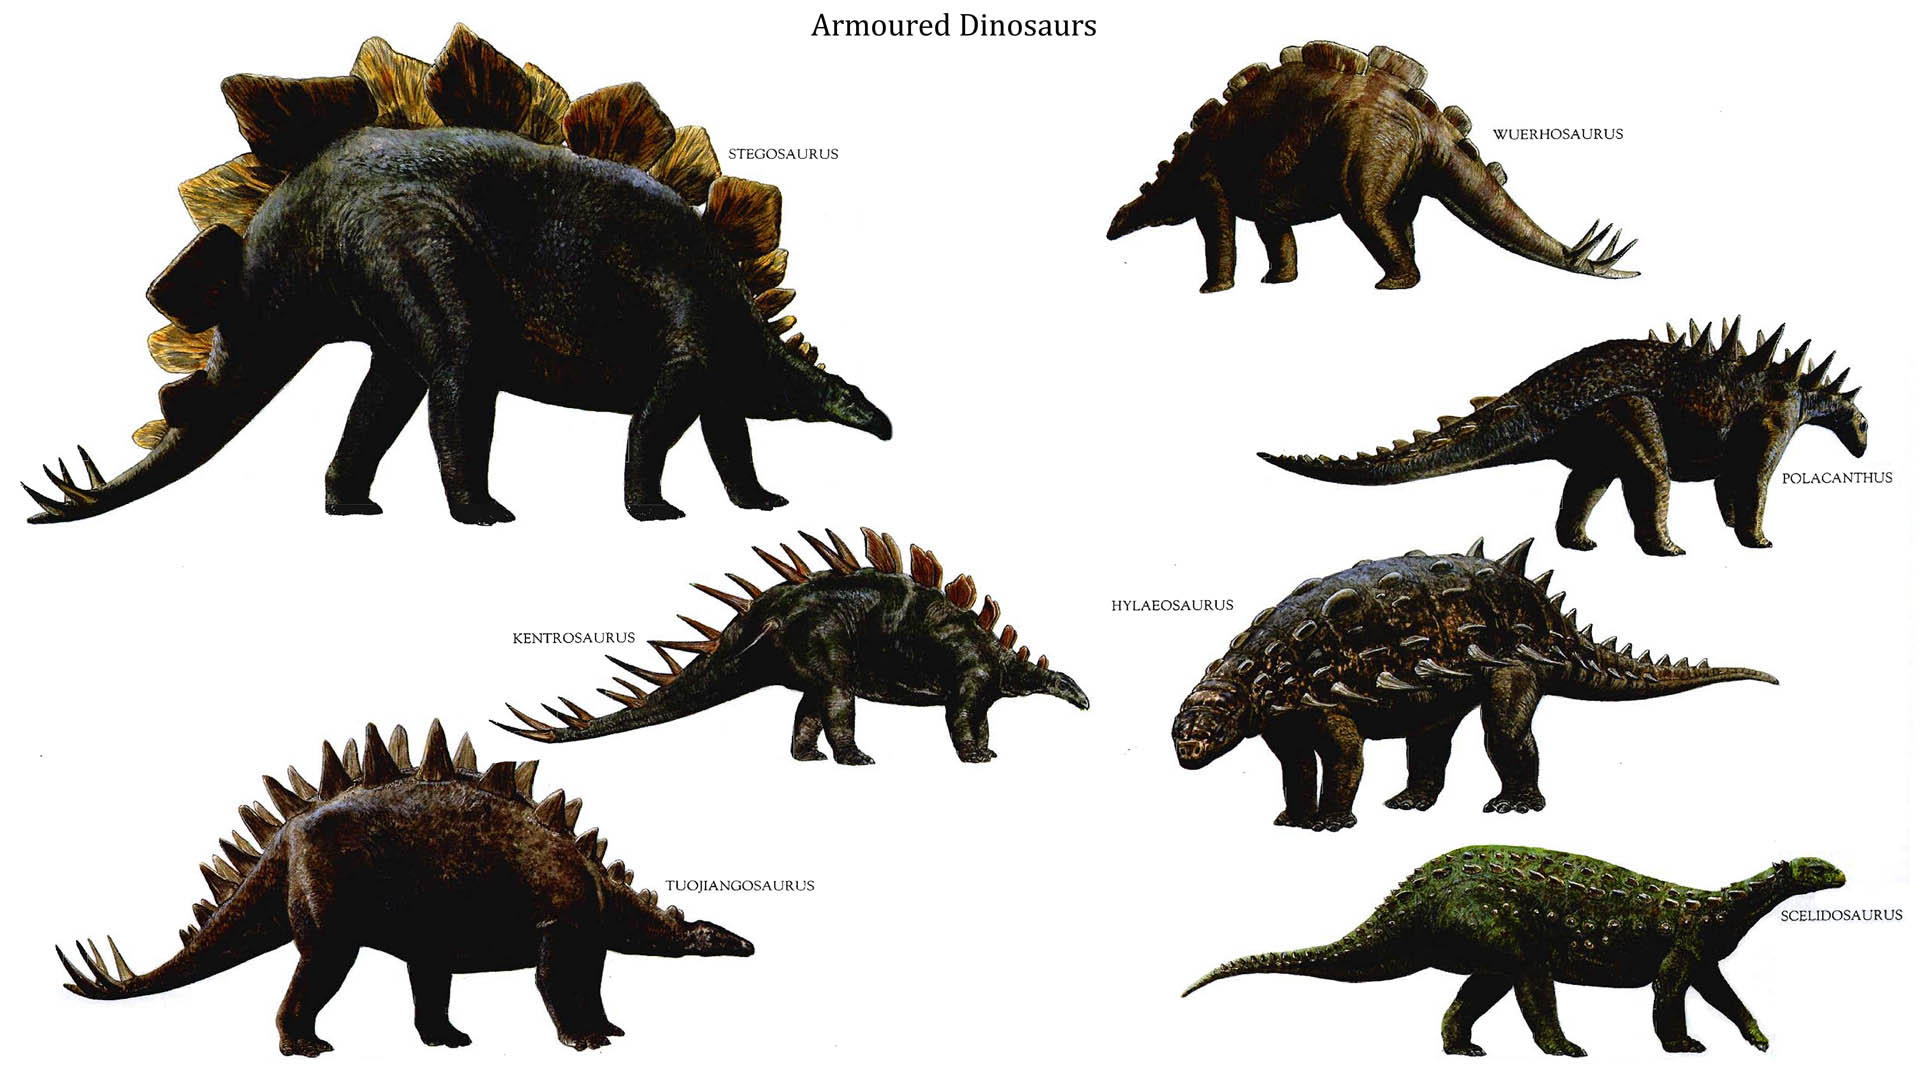 Armoured Dinosaurs Types 300.04 Kb